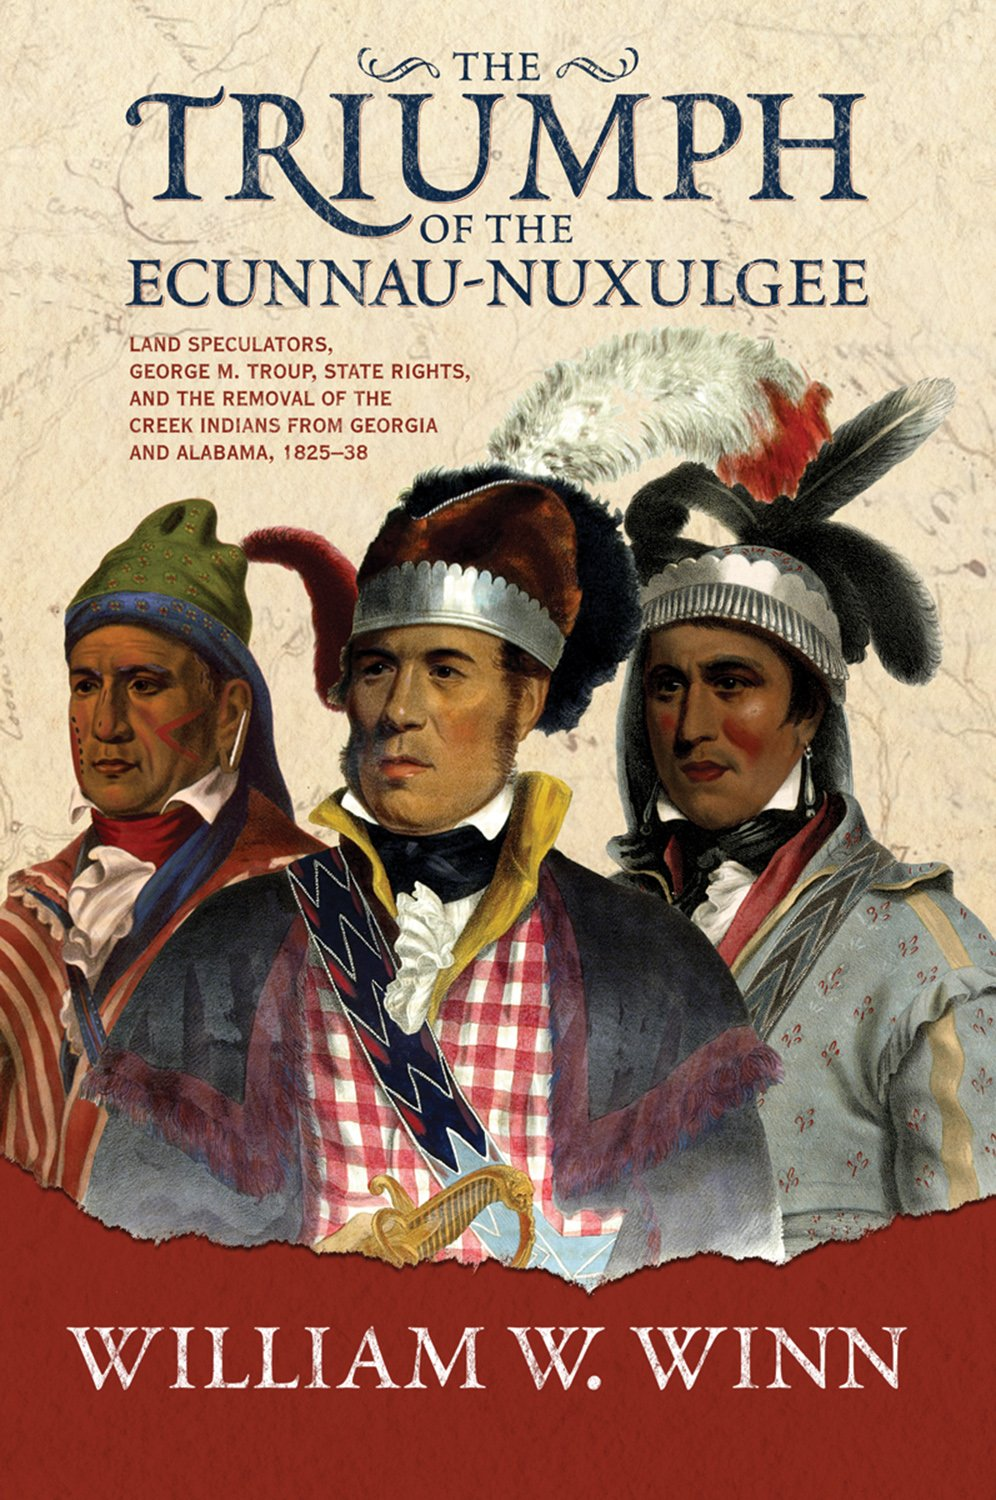 Download The Triumph of the Ecunnau-Nuxulgee: Land Speculators, George M. Troup, and the Removal of the Creek Indians from Alabama and Georgia, 1825-1838 PDF